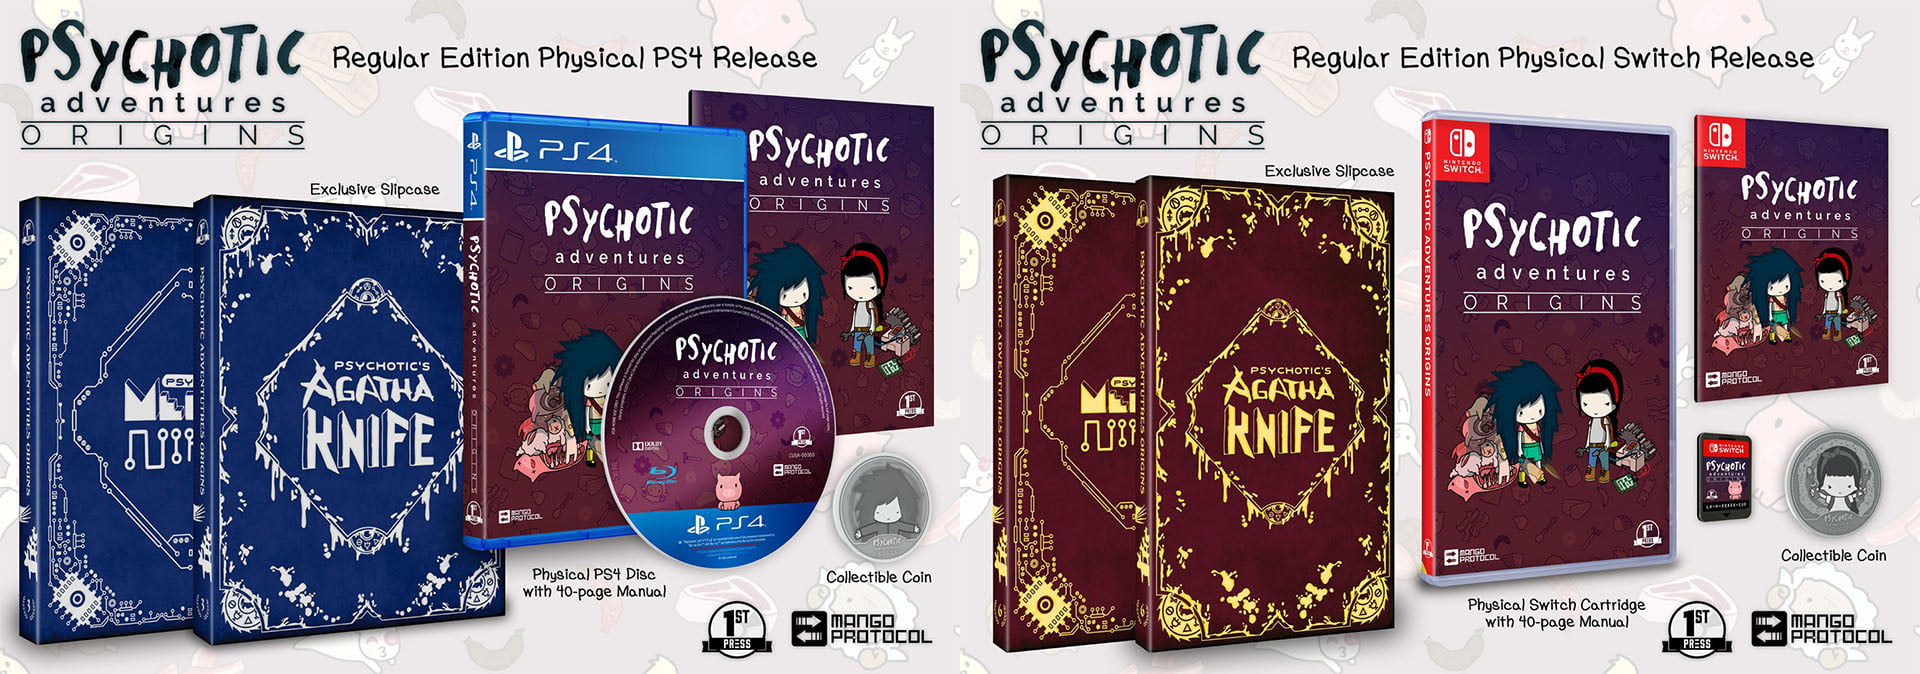 Psychotic Adventures Origins 2